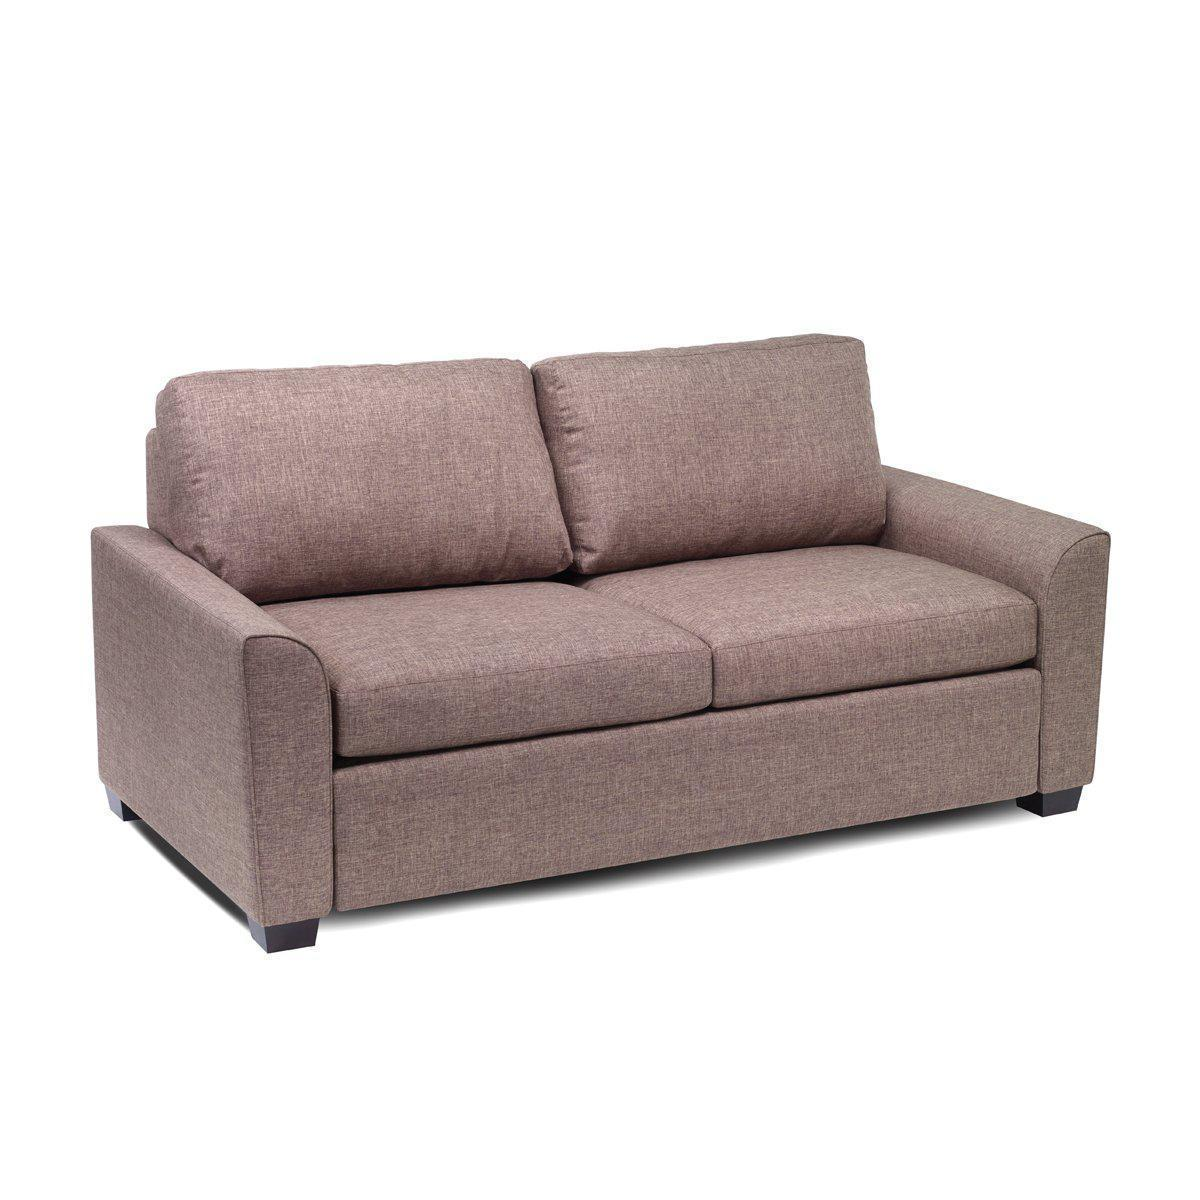 Holden Everyday Sleeper Sofa